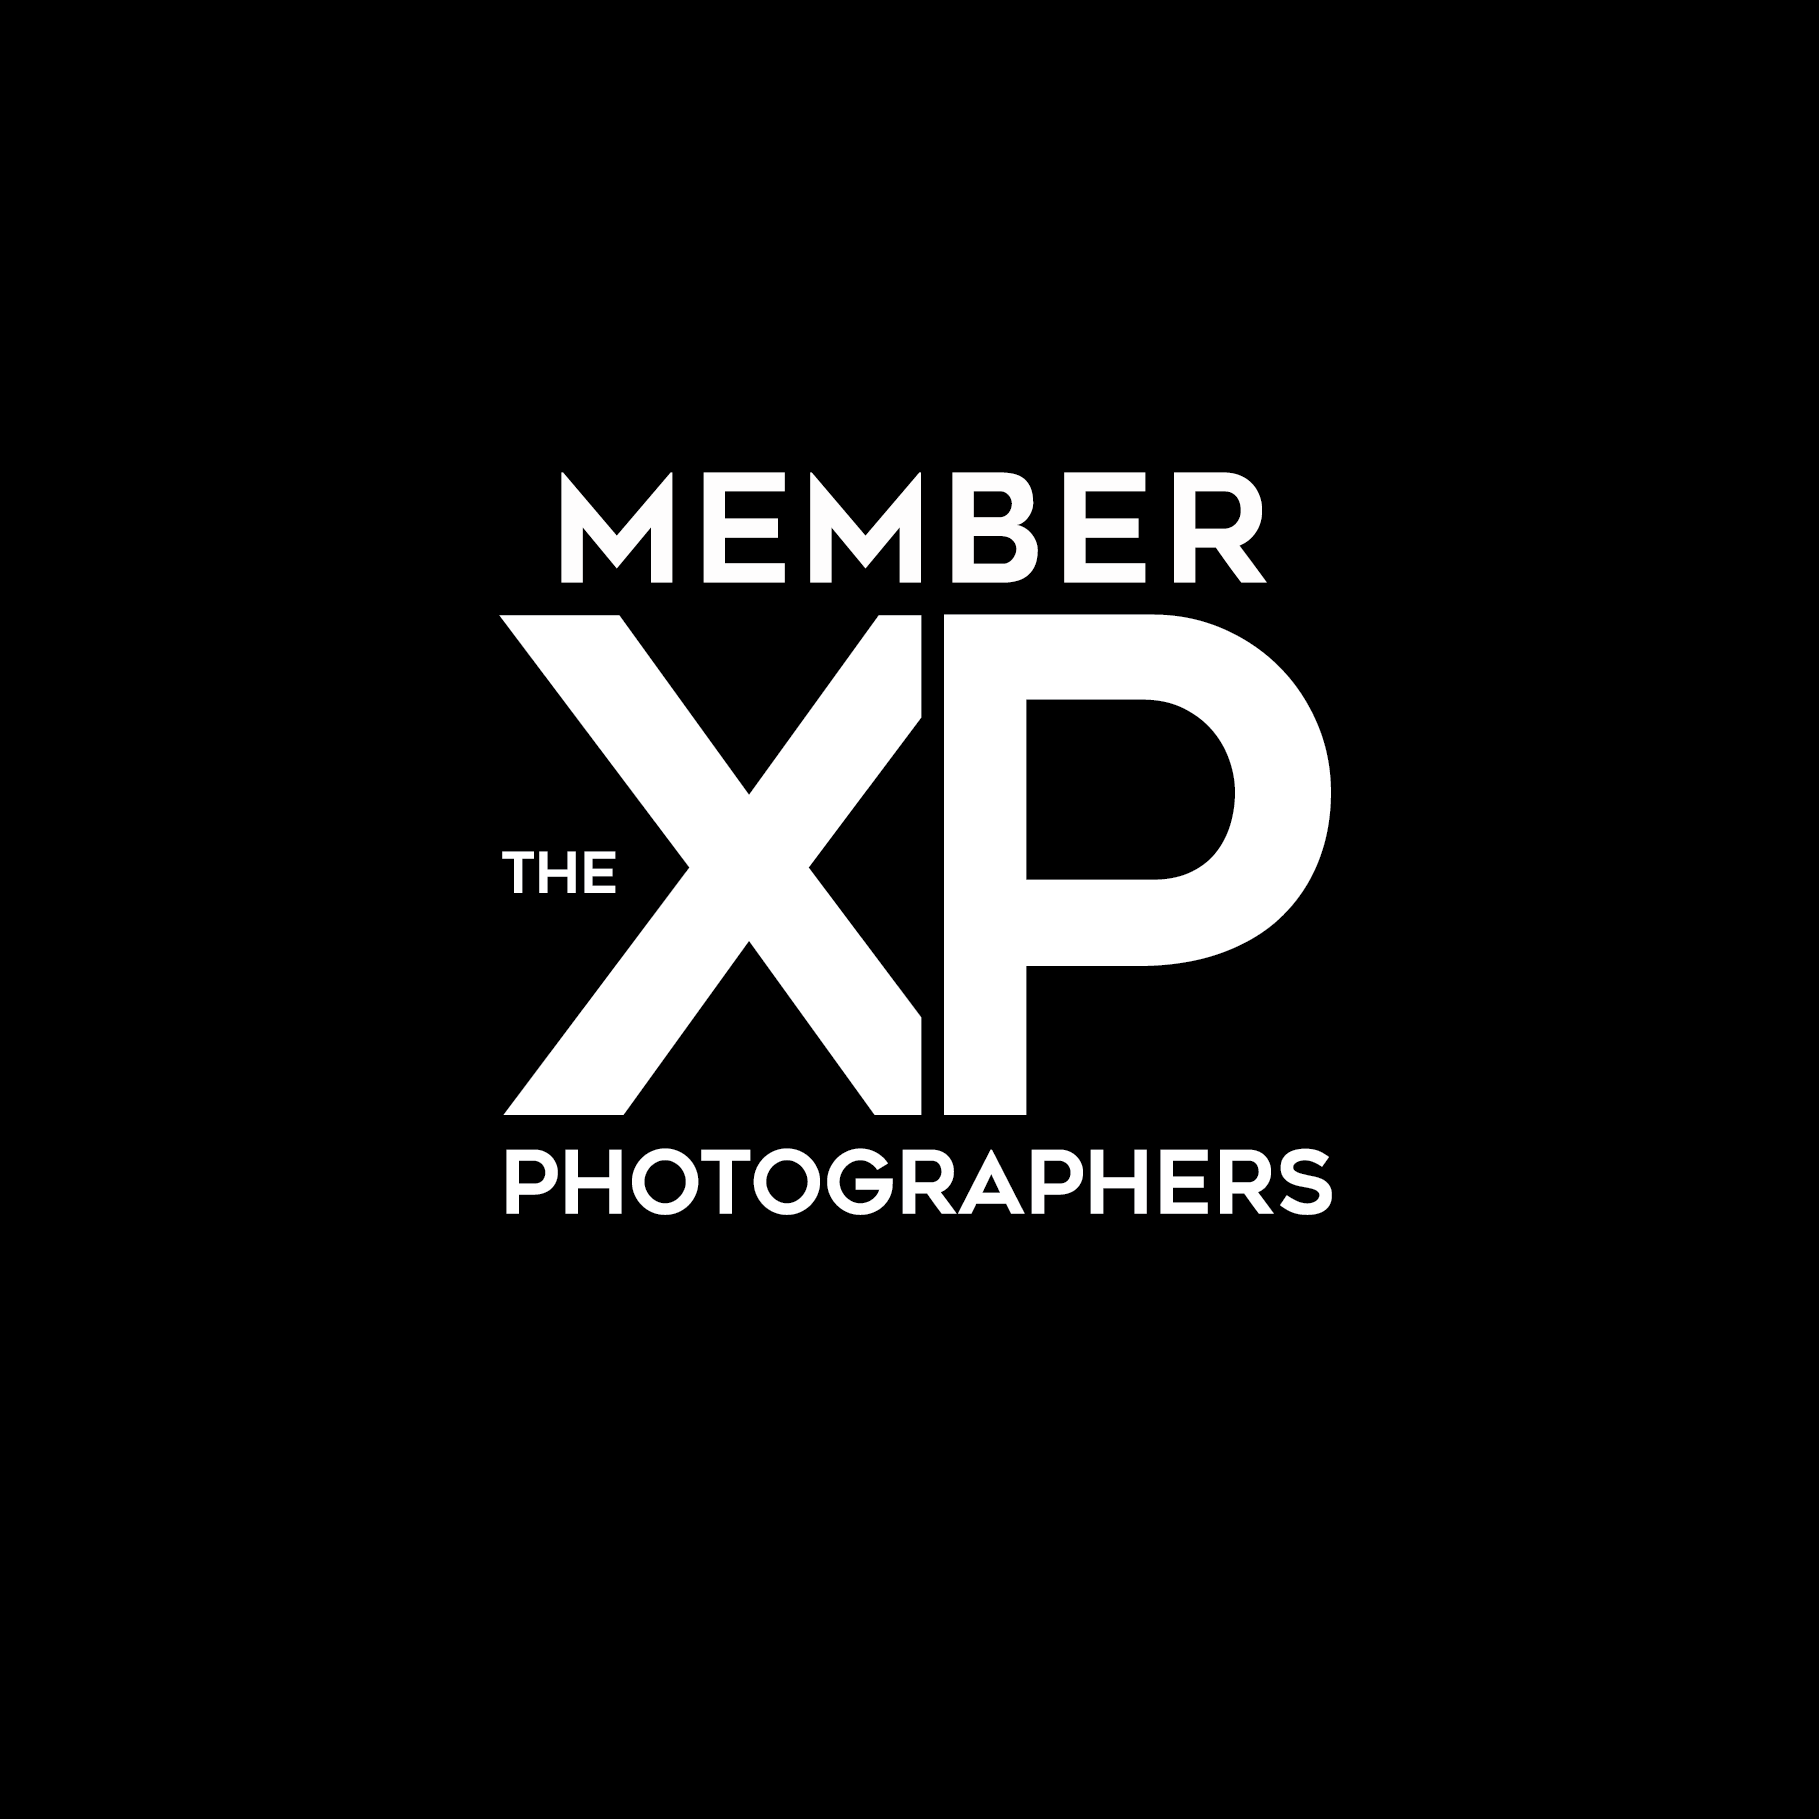 Logo de l'association internationale The Exception photographers